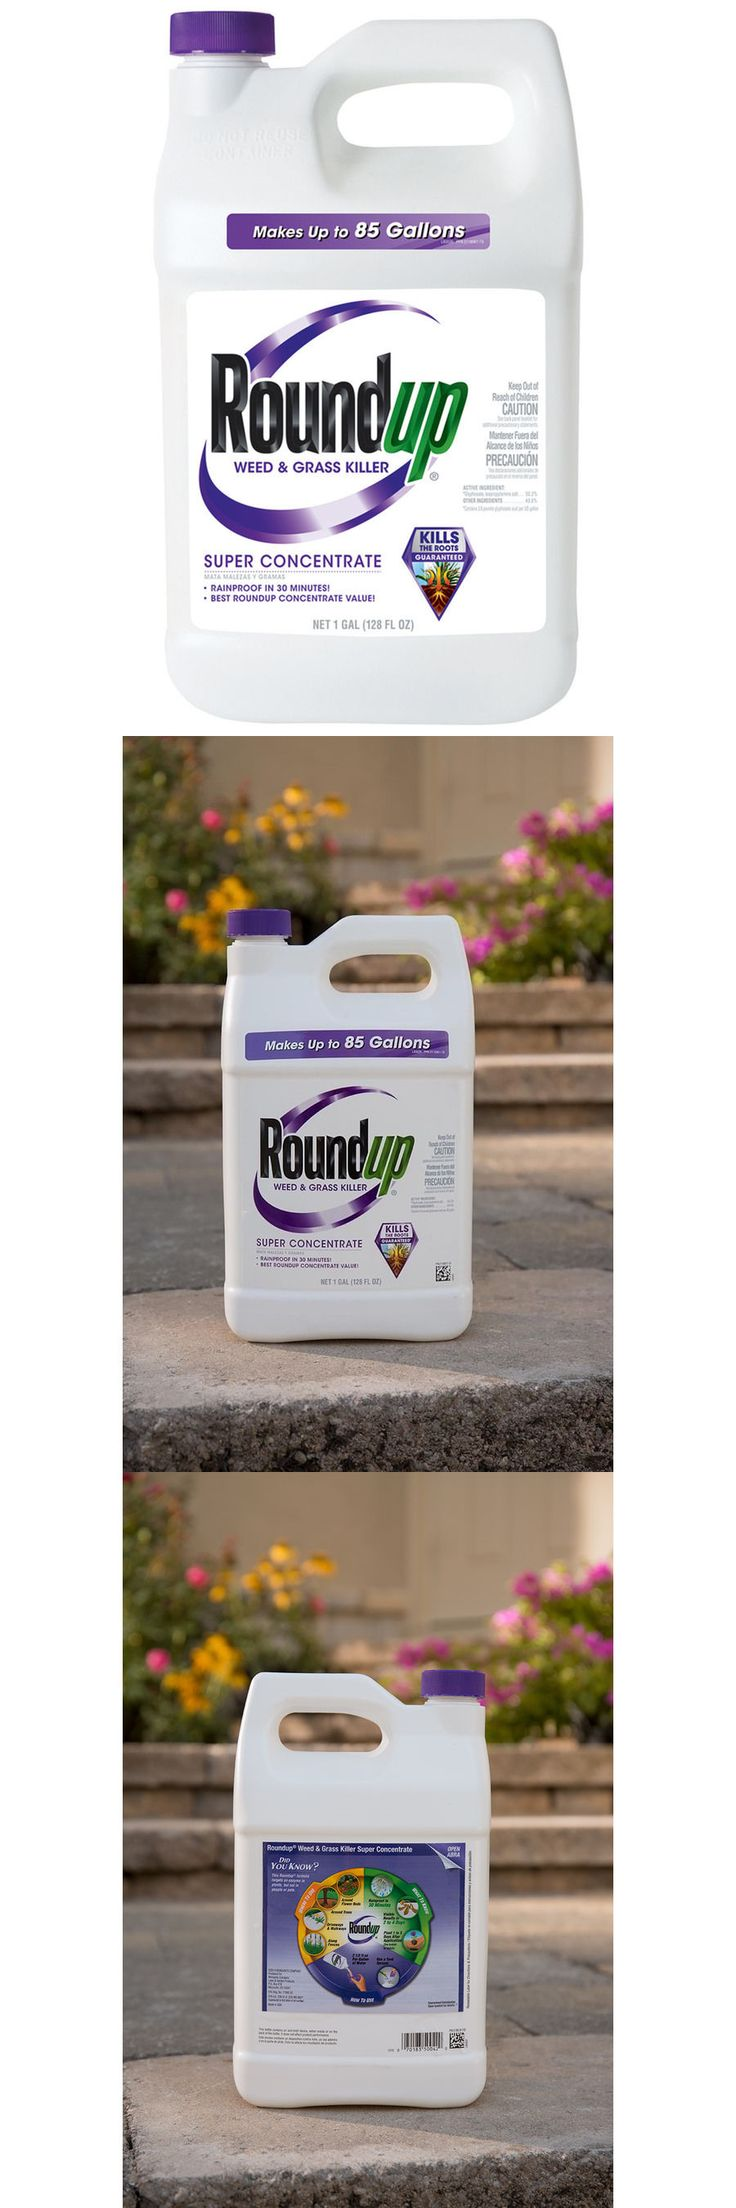 Weed Preventers 181050: Roundup Super Concentrate 1-Gallon Weed And Grass Killer -> BUY IT NOW ONLY: $108.99 on eBay!